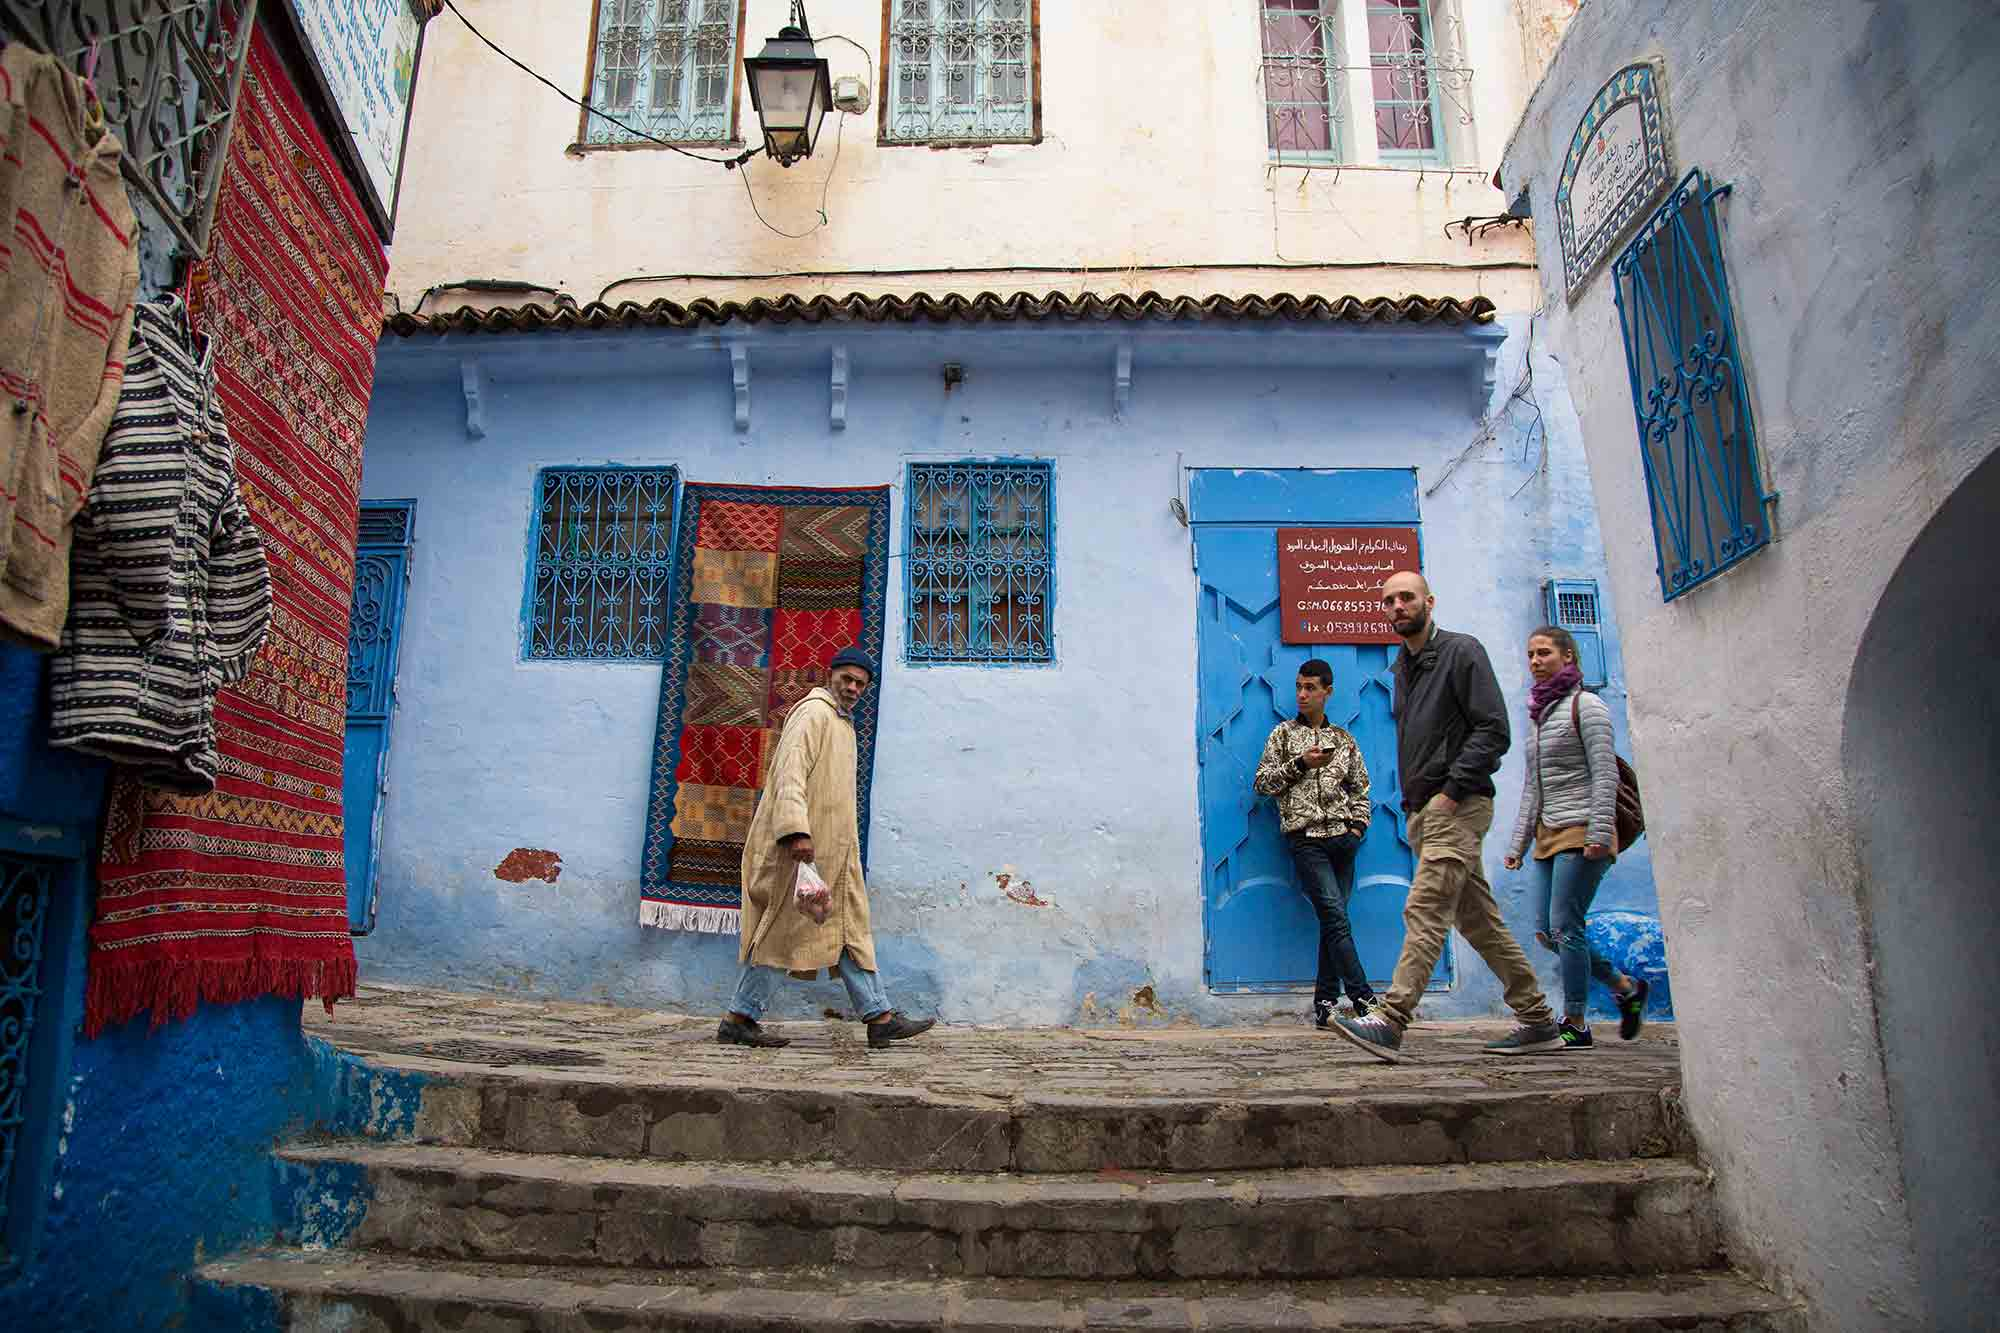 Tourism has definitely increased in Chefchaouen, yet the balance between ease and authenticity is just right. © ULLI MAIER & NISA MAIER